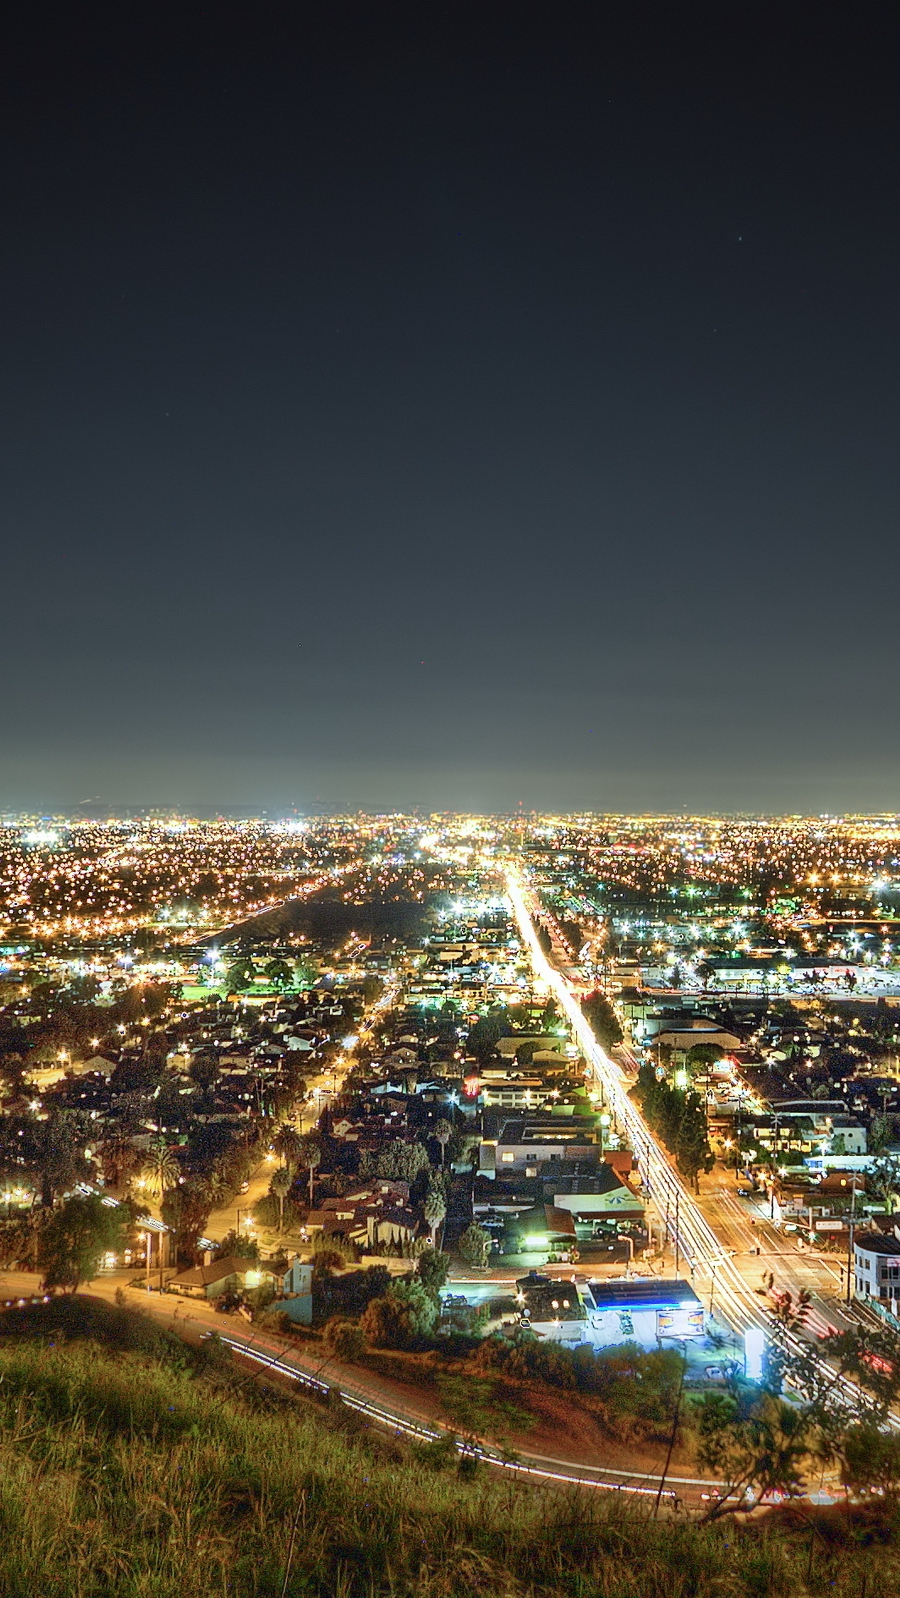 Los Angeles City Sunset Wallpaper for iPhone 11, Pro Max ... |Los Angeles City Phone Wallpaper